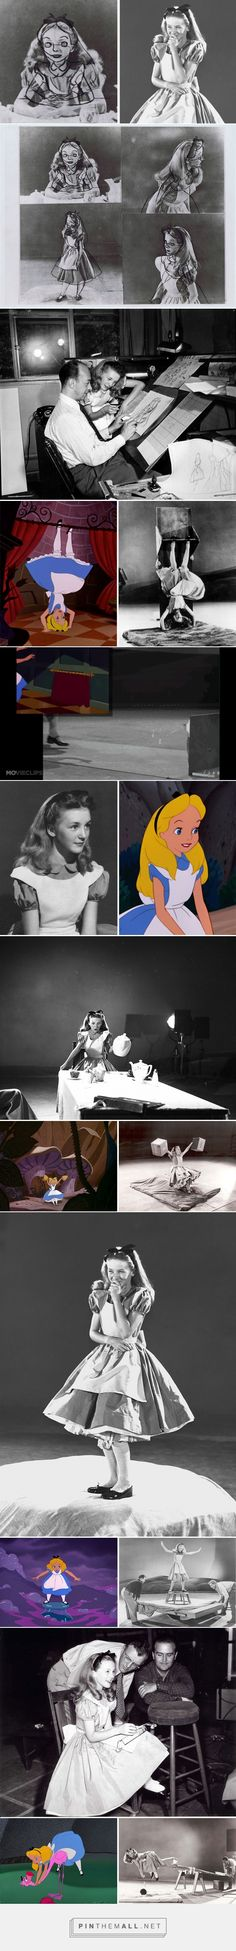 Old Photos Reveal How Disney's Animators Used A Real-Life Model To Draw Alice In Wonderland Disney Fun Facts, Disney Jokes, Funny Disney Memes, Cute Disney, Disney And Dreamworks, Disney Pixar, Walt Disney, Disney Theory, Disney And More